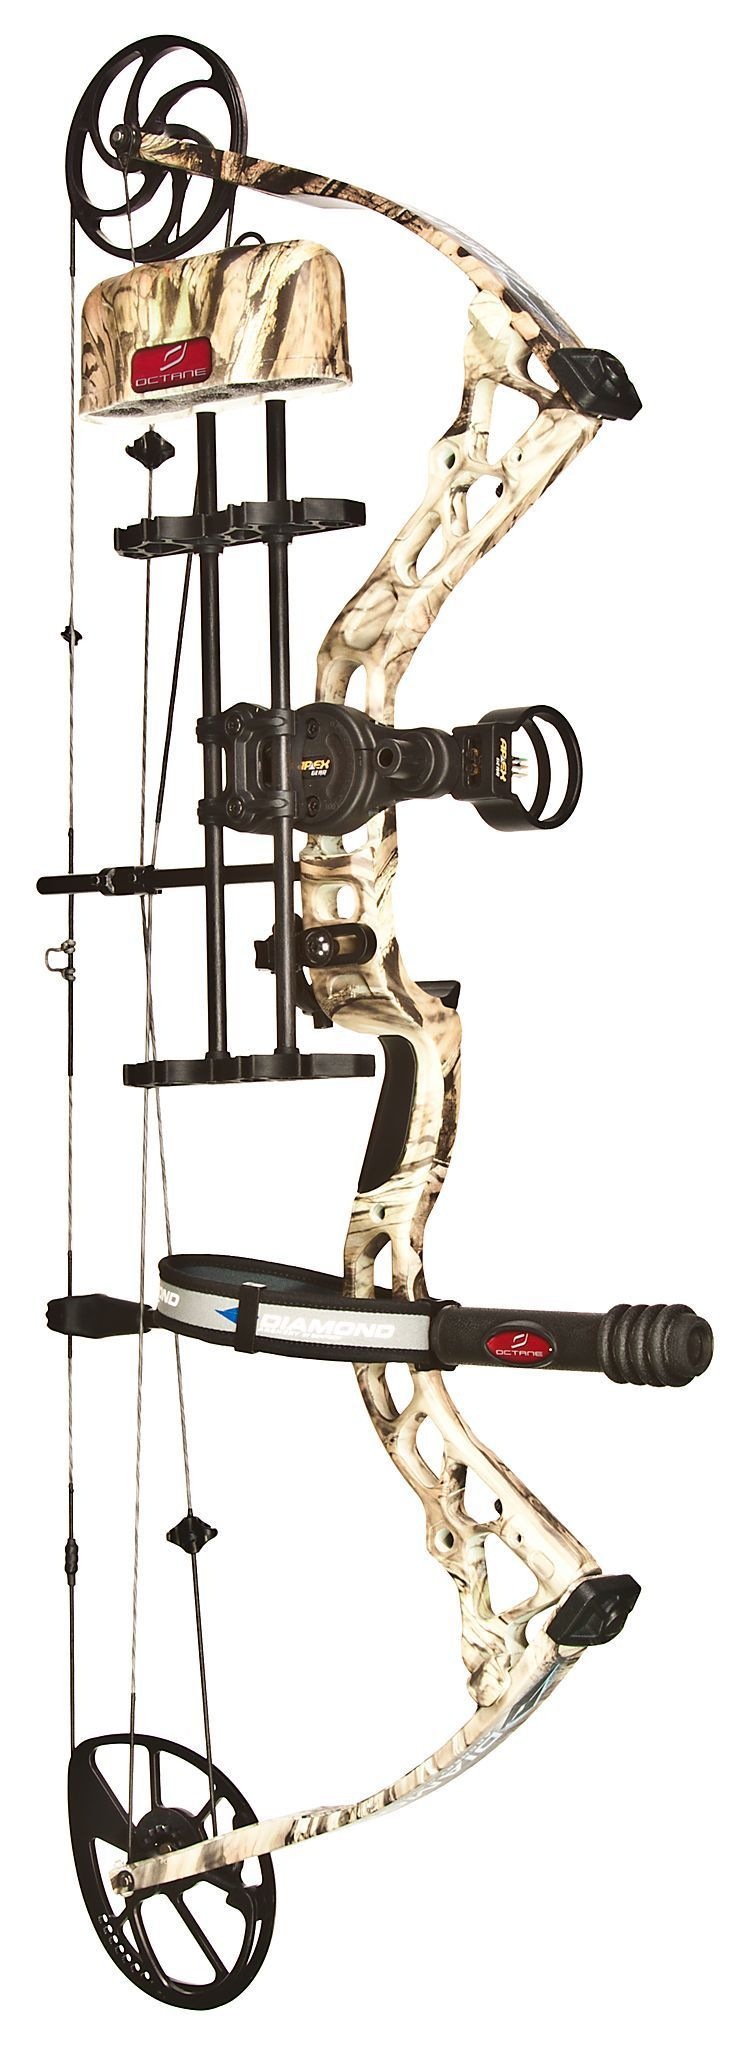 Diamond Core R.A.K. Compound Bow Package   Bass Pro Shops   Crossbow ...